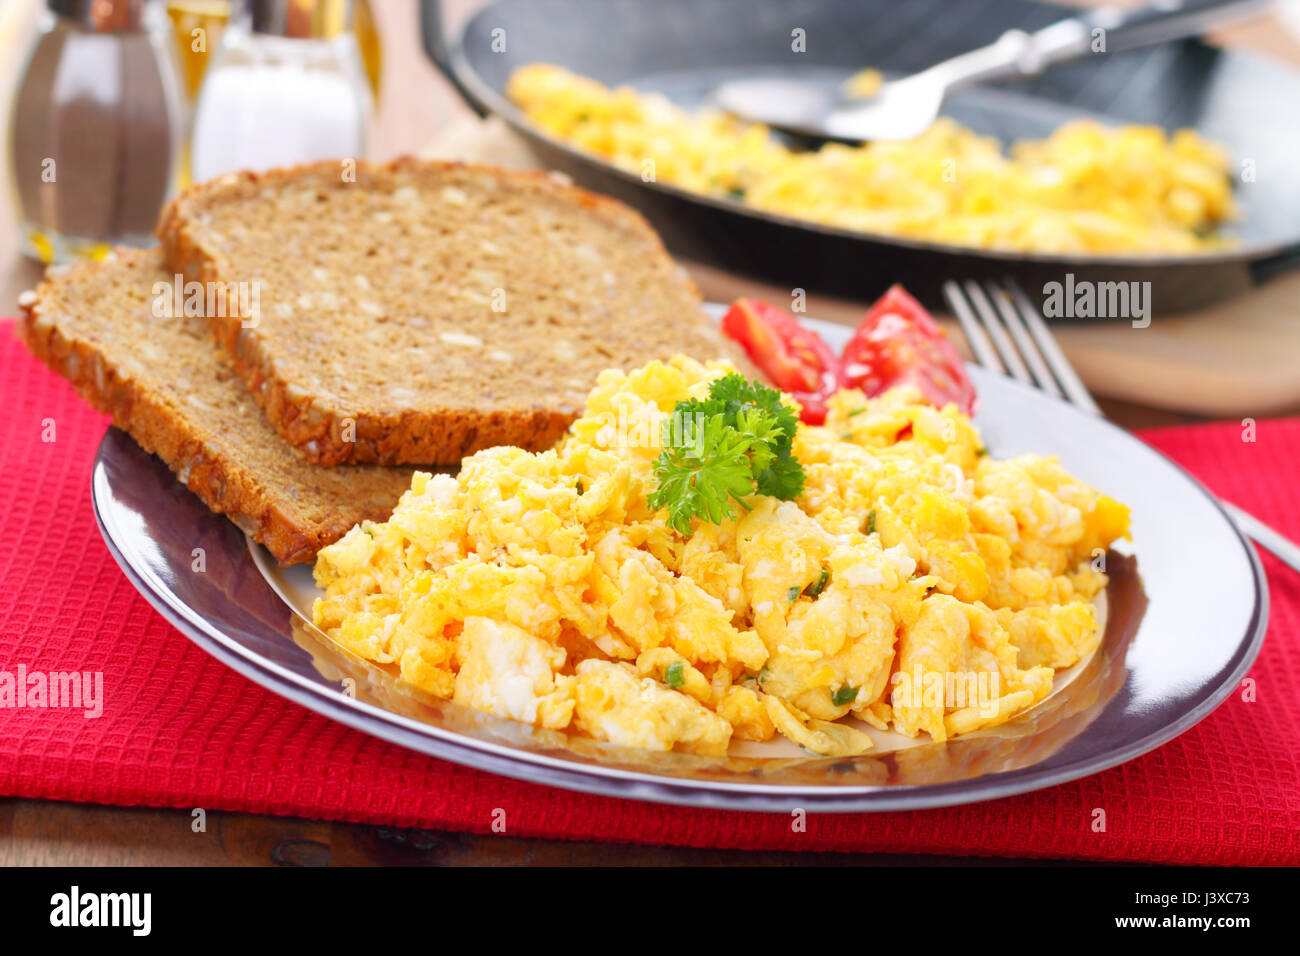 scrambled eggs with chives and herbs and two slices of bread - Stock Image